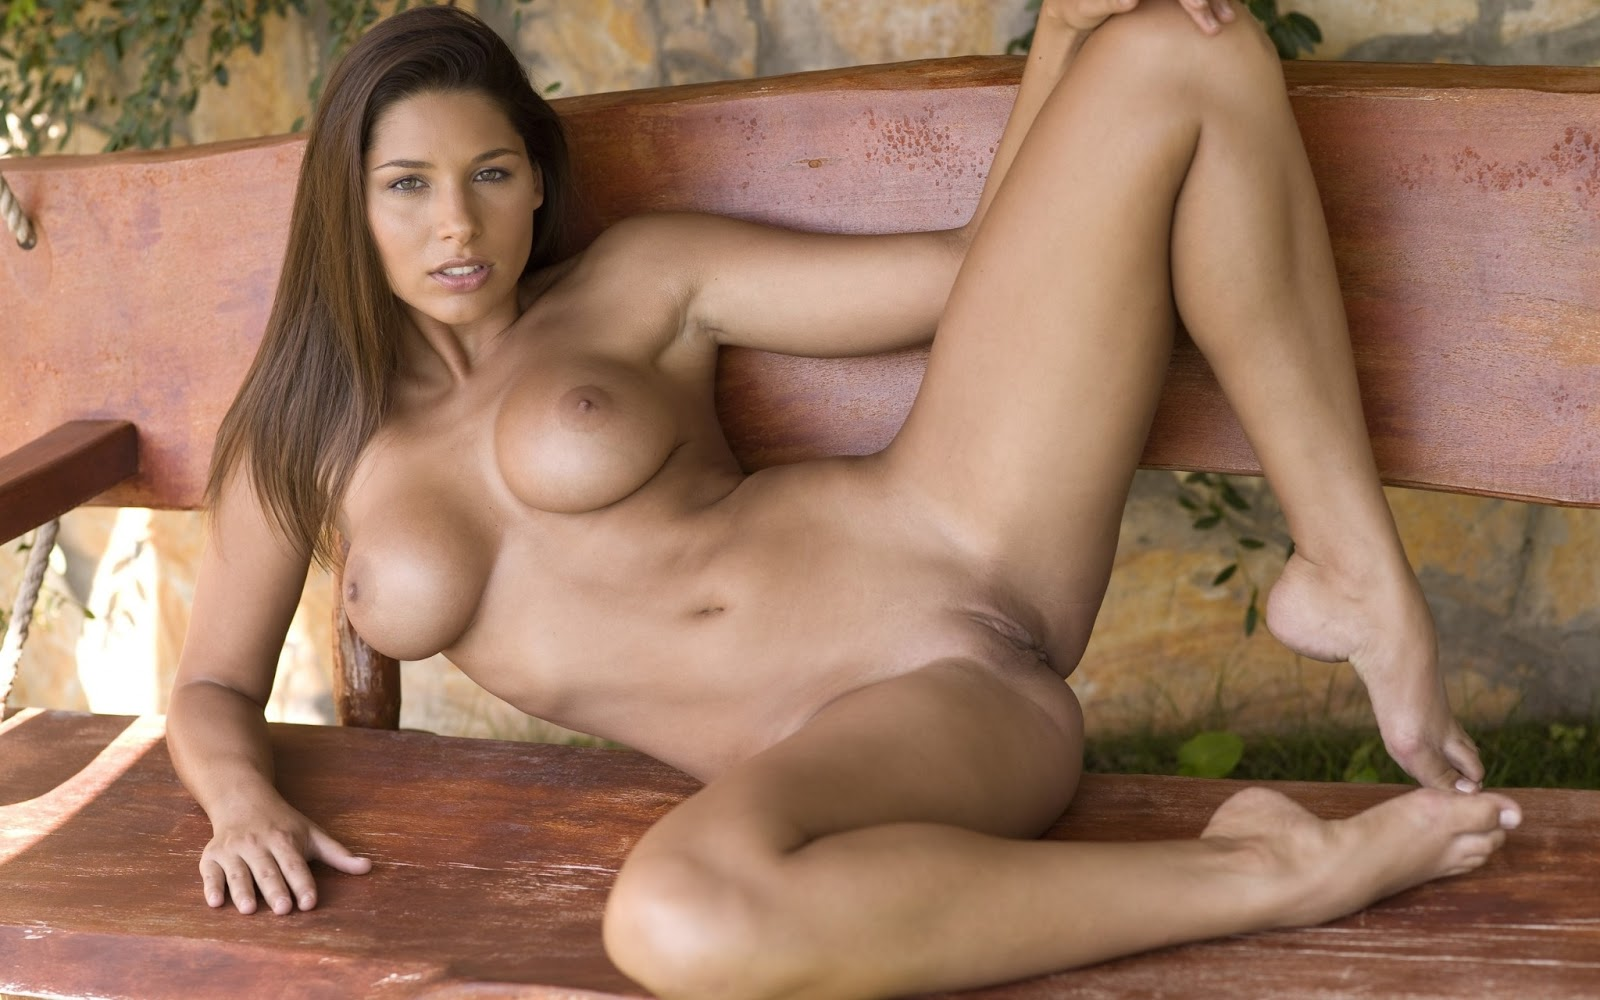 Sey Pussy Hd Nude Girl Naked Wallpaper